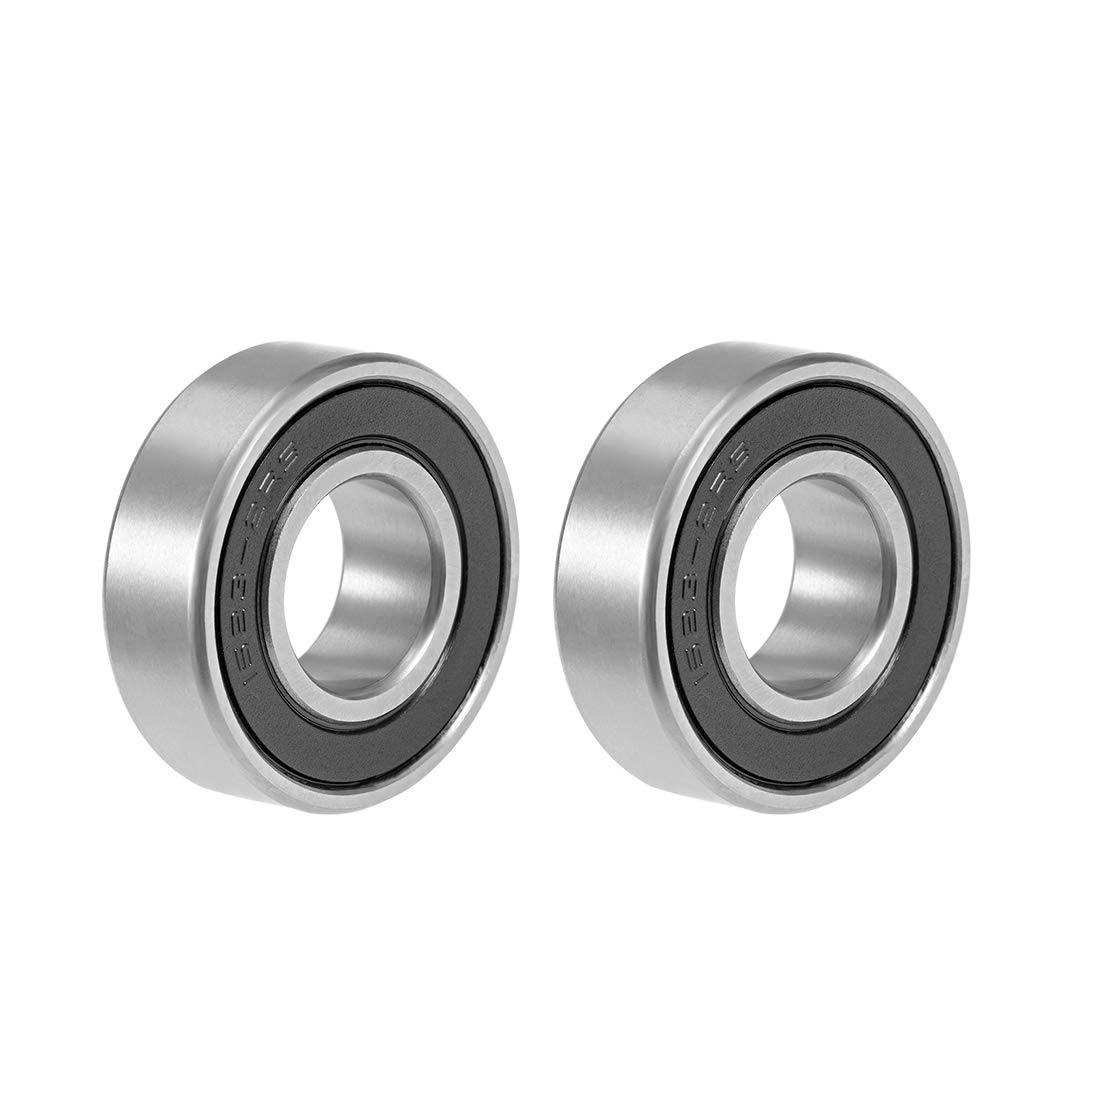 uxcell® 1623-2RS Deep Groove Ball Bearing 5/8'x1-3/8'x7/16' Double Sealed Chrome Bearings 2-Pack